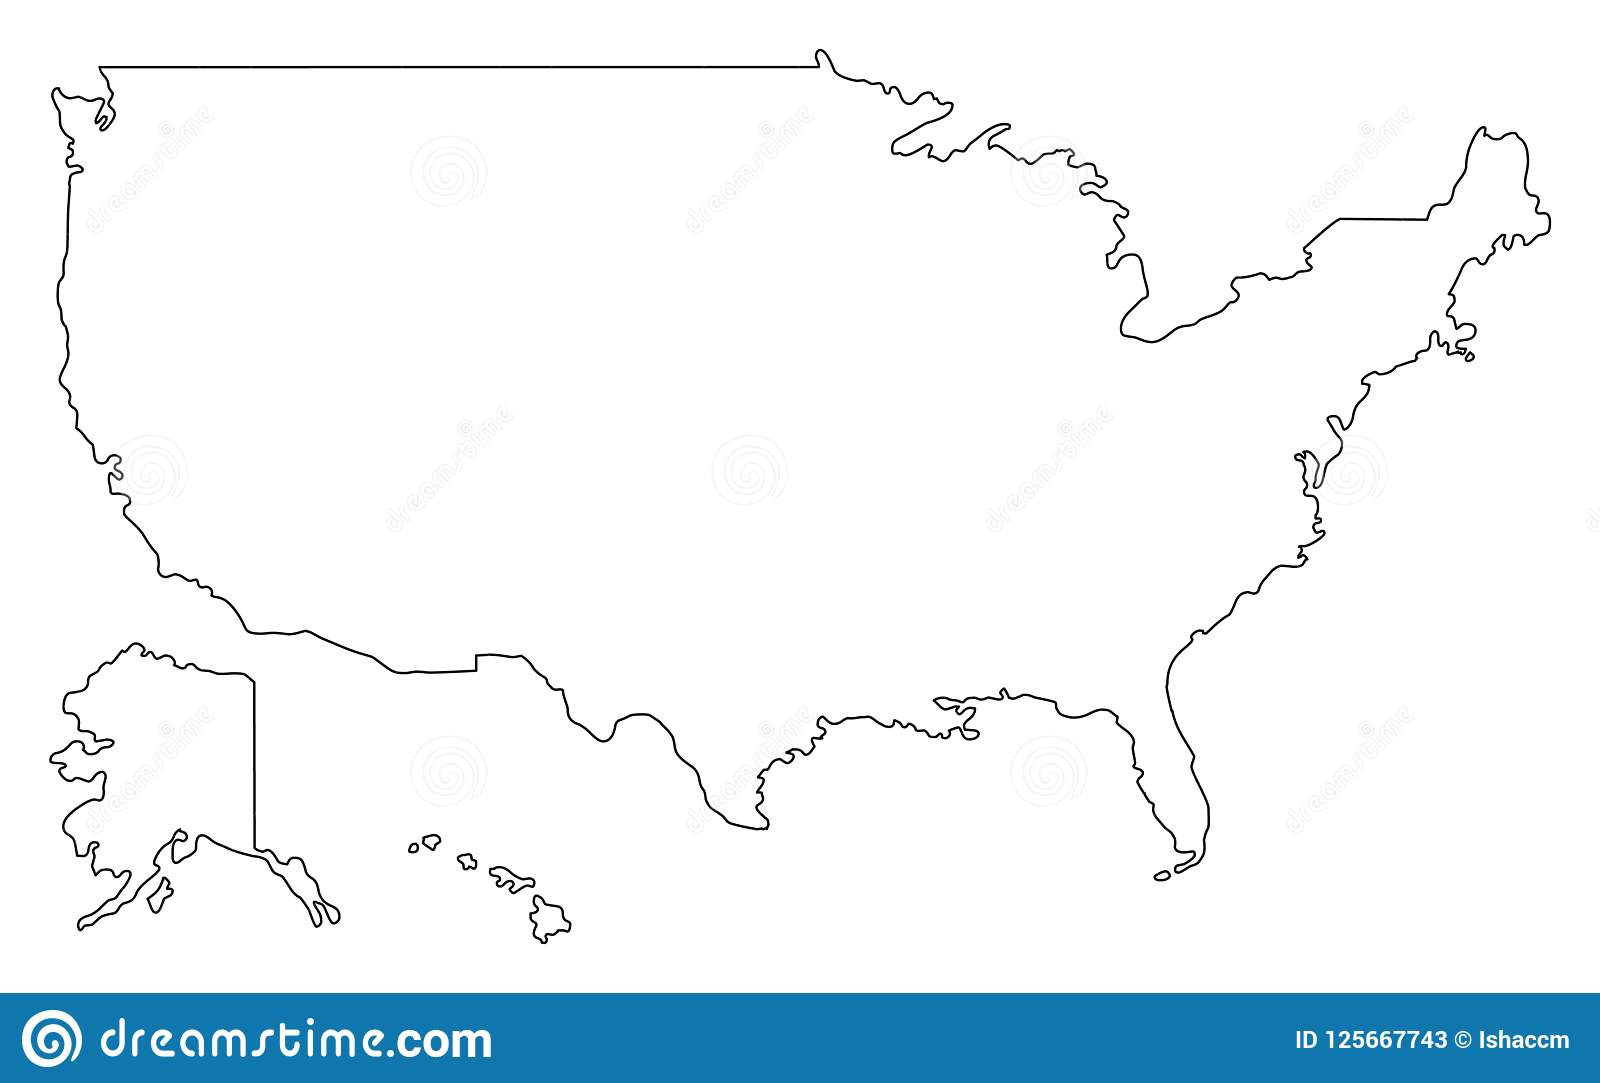 United States Of America Map Outline Vector Illustartion.USA ...